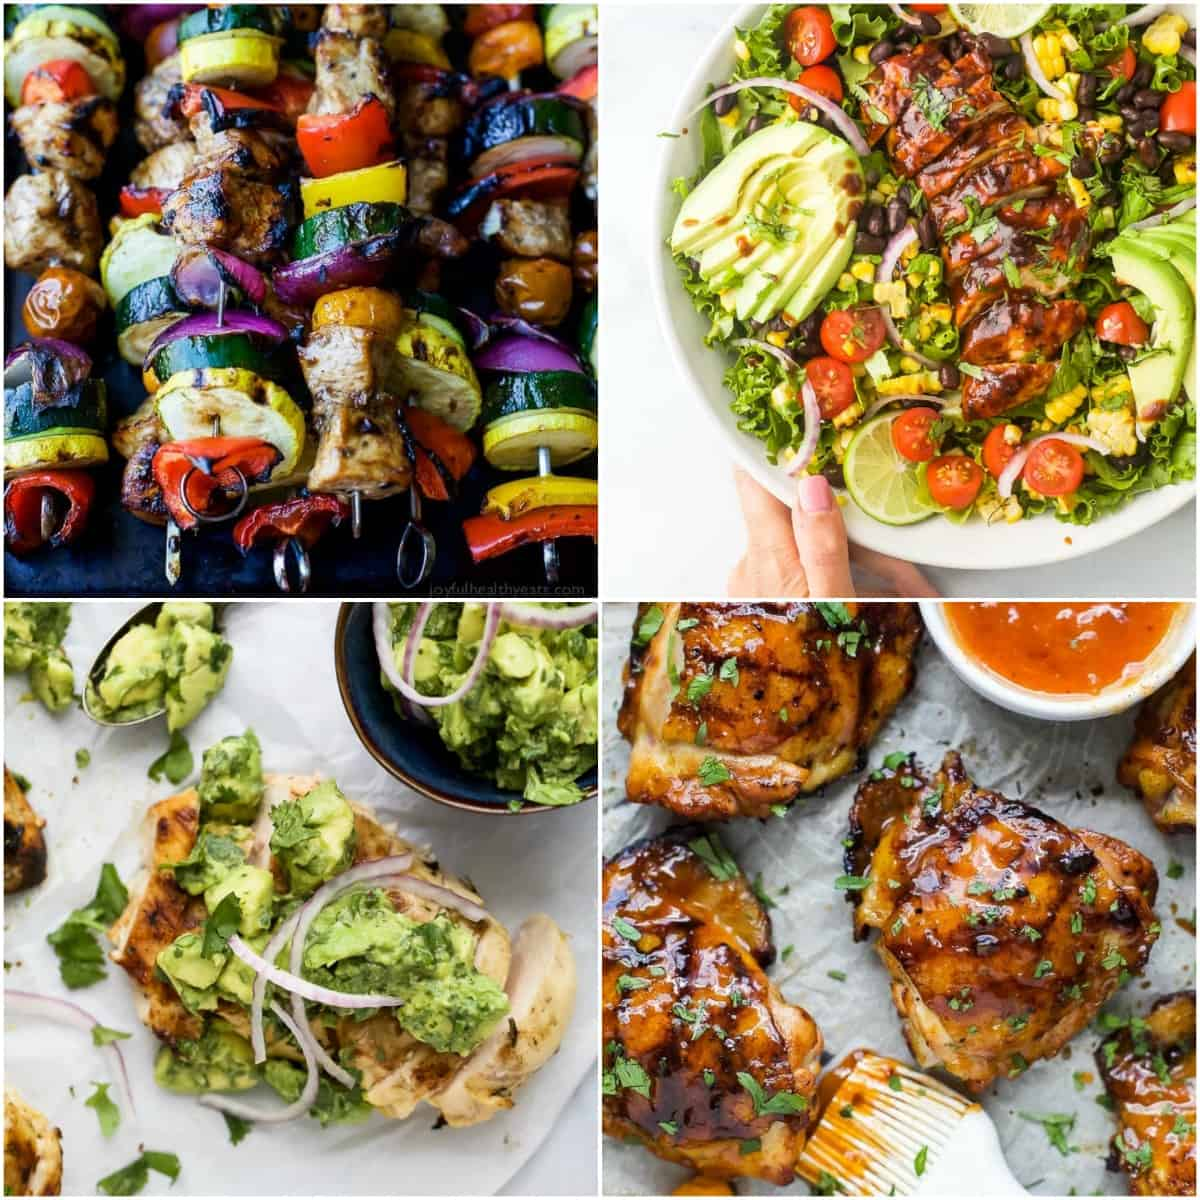 25 Best Grilled Chicken Recipes For Summer